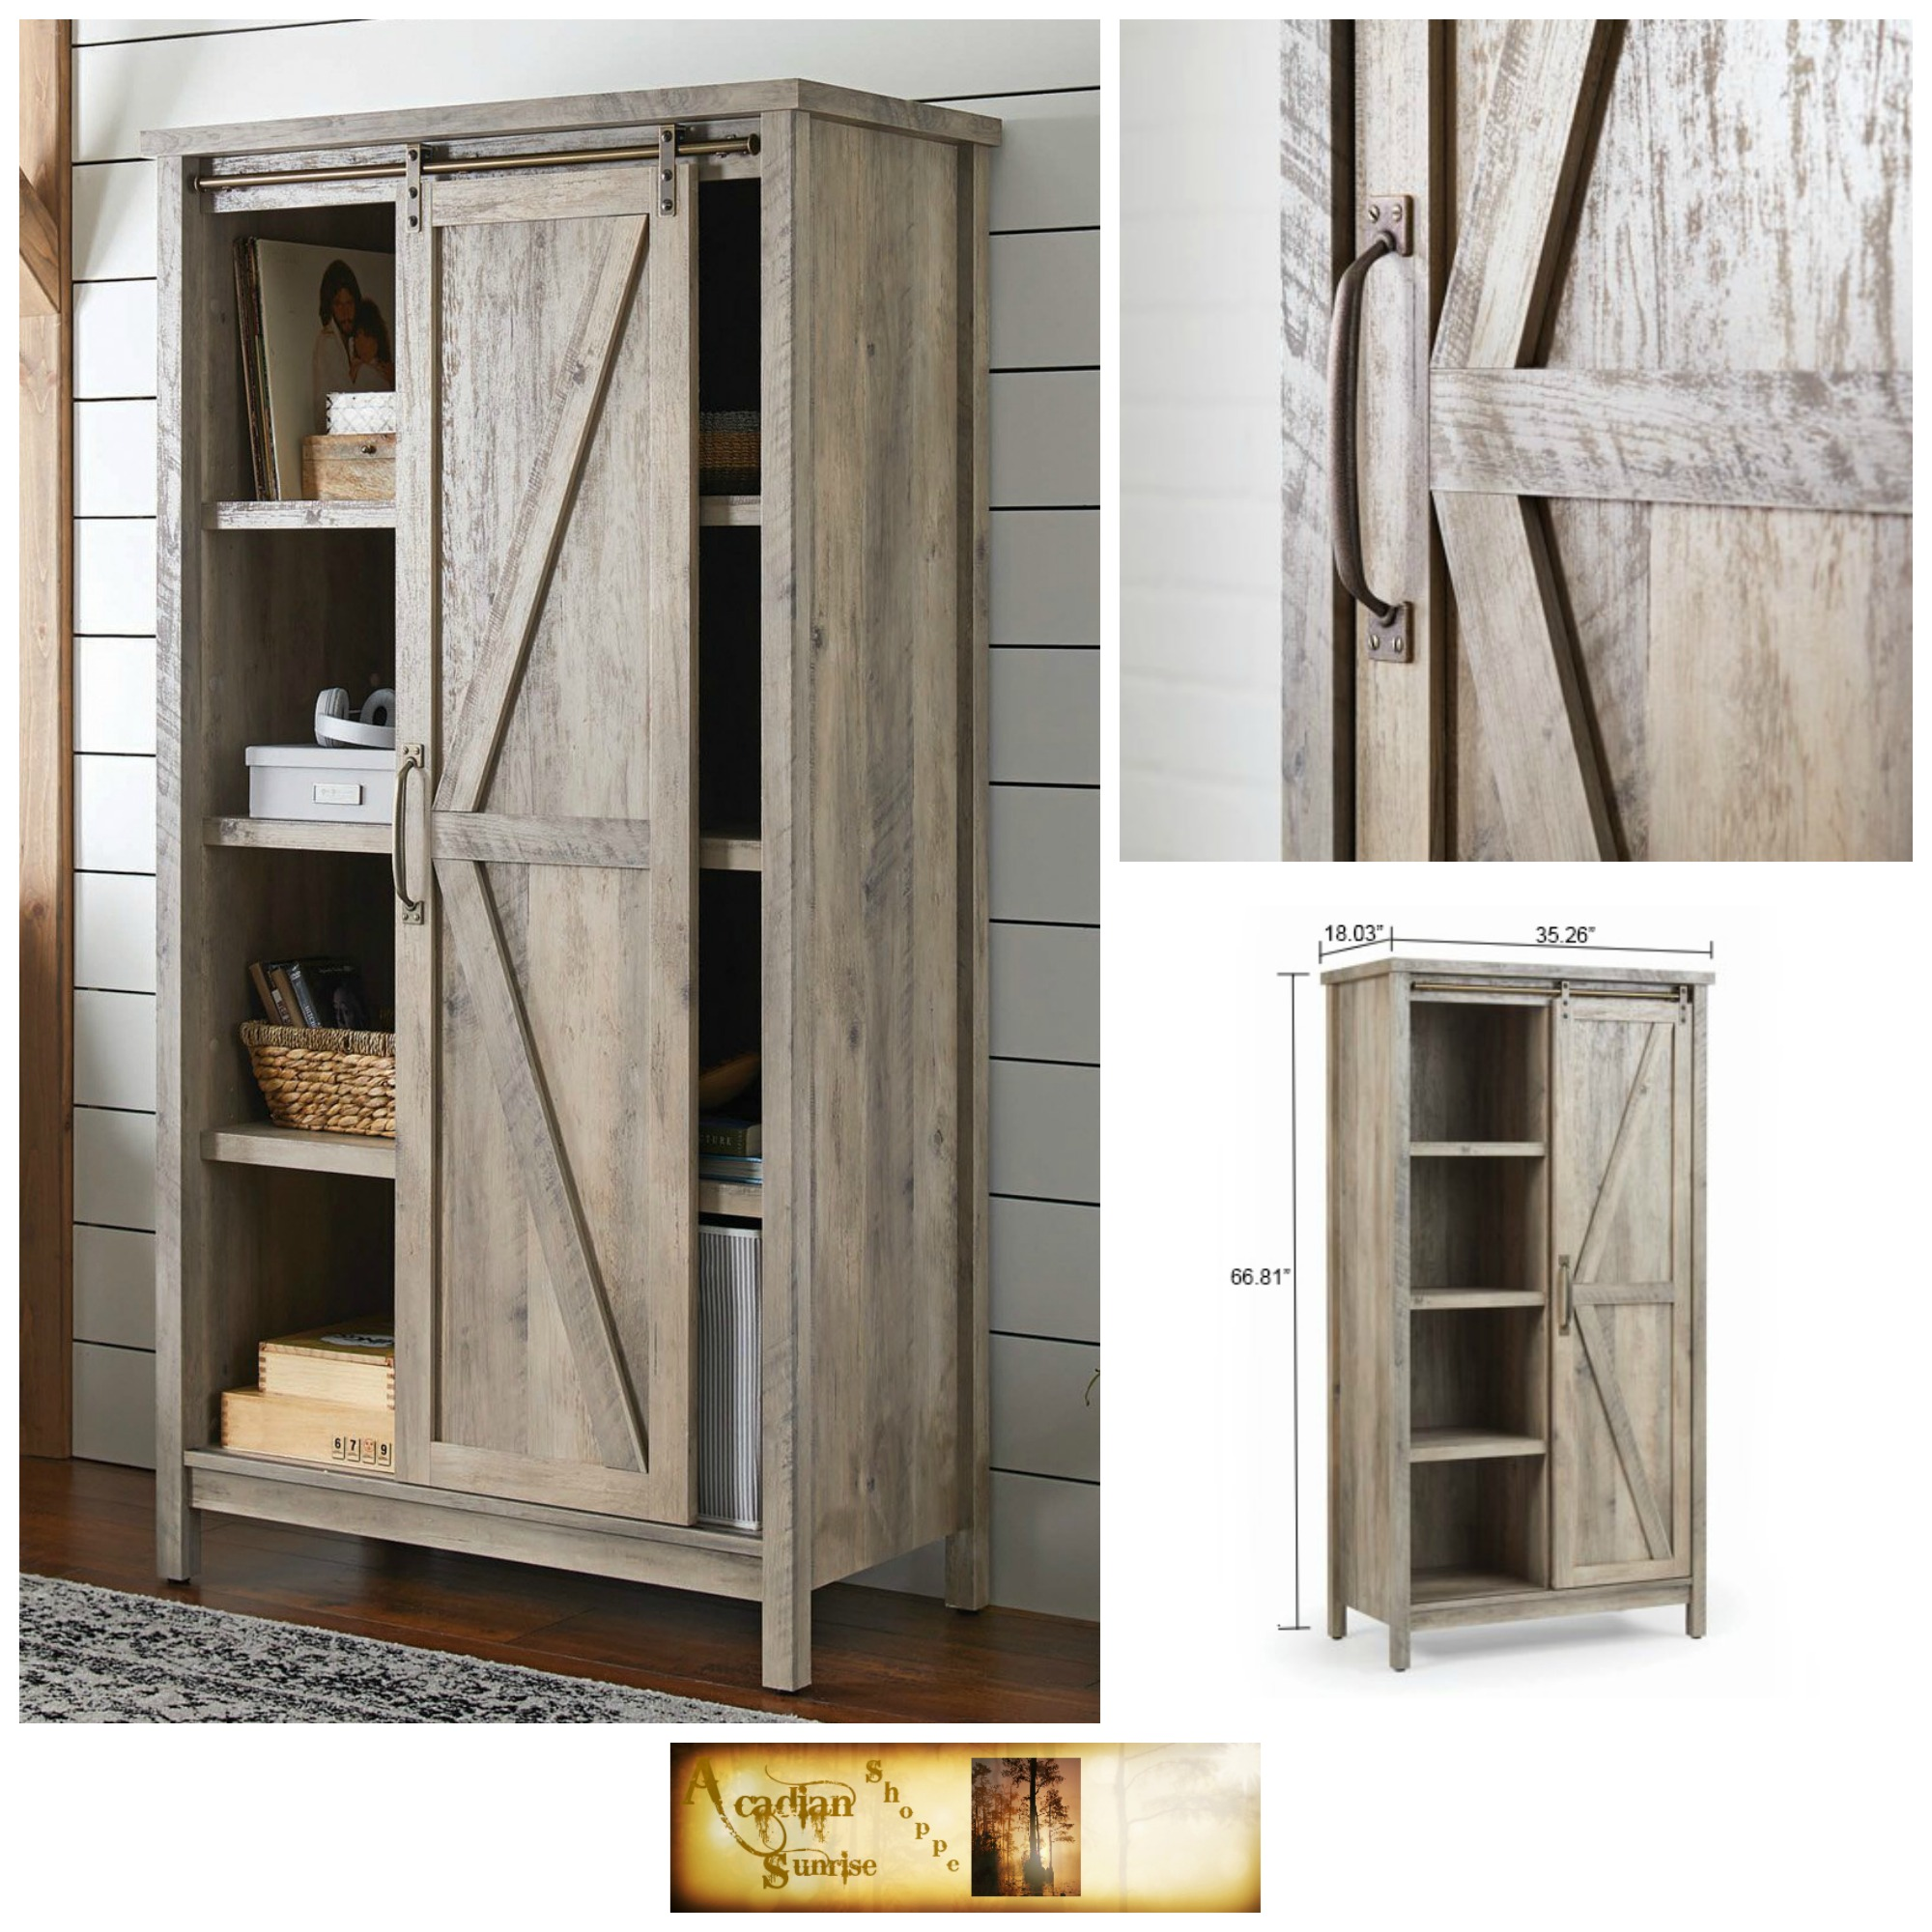 Details About Tall Storage Cabinet Country Wood Rustic Farmhouse Pantry Cupboard Sliding Door